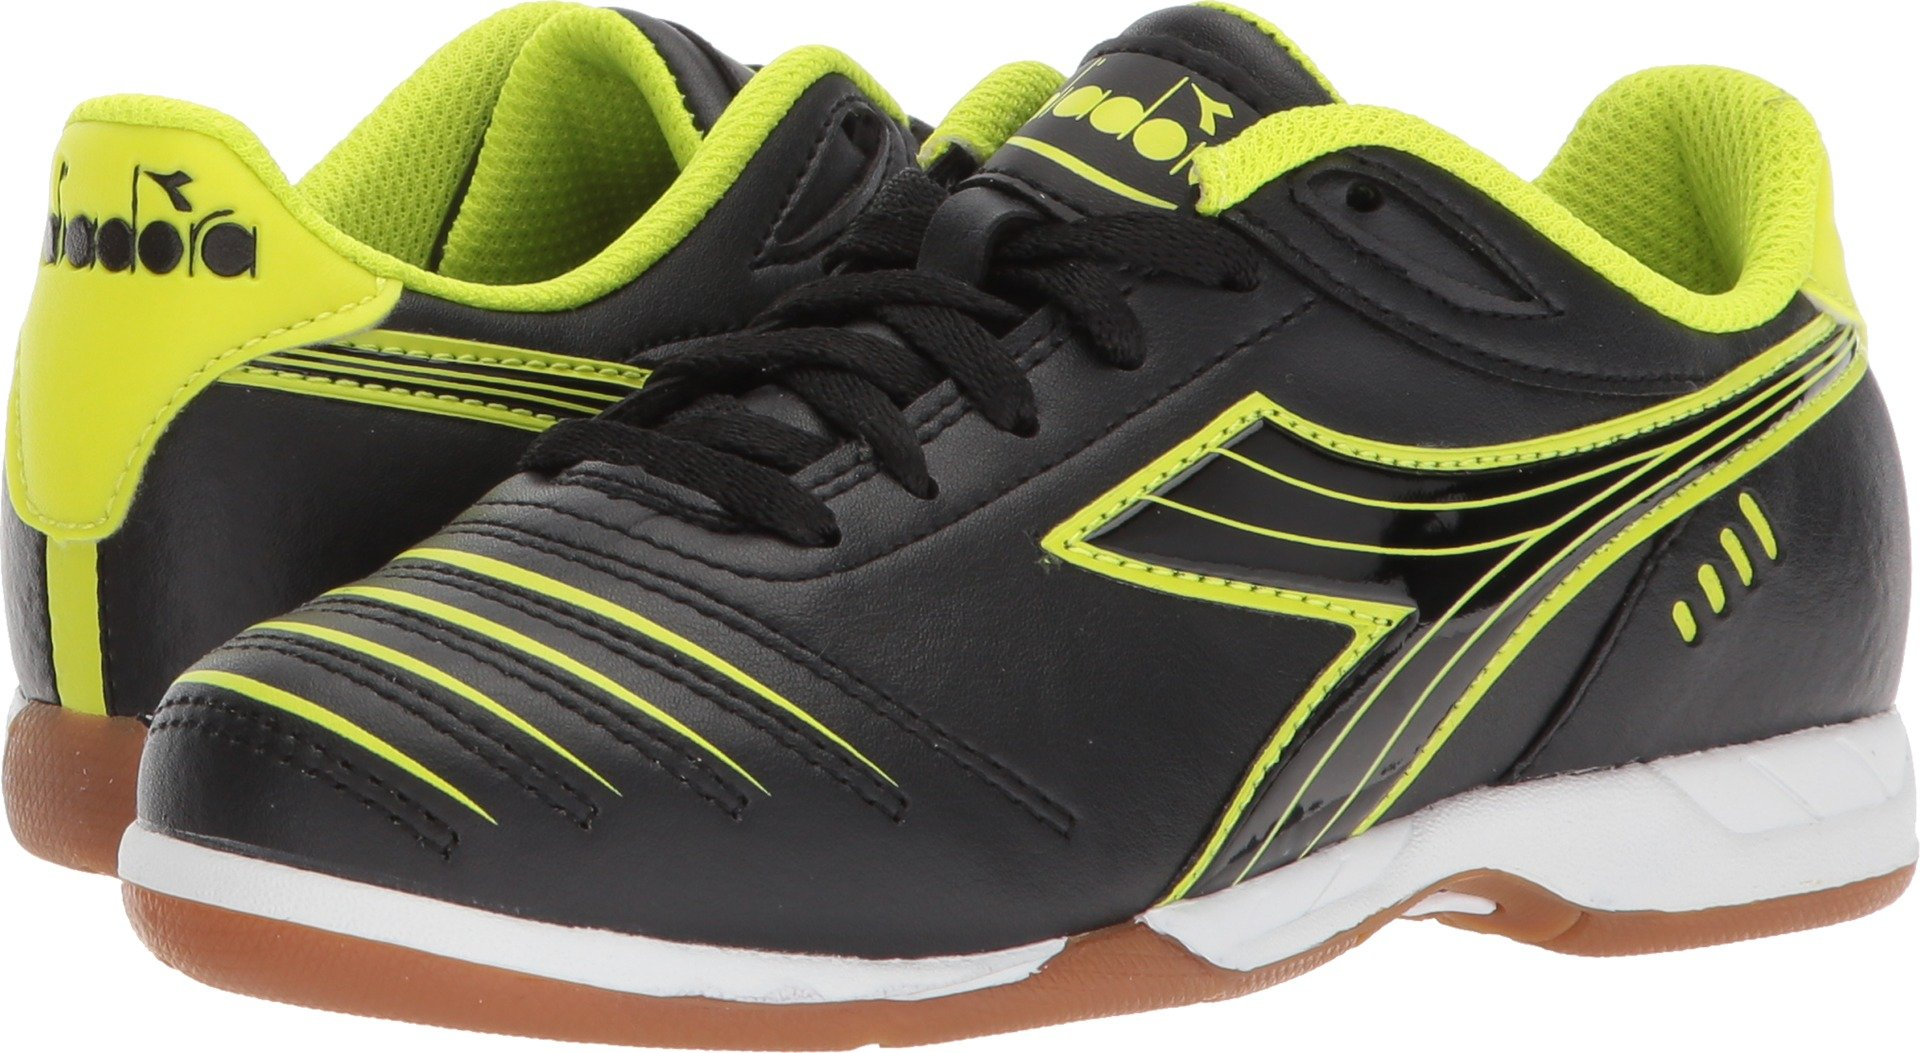 Diadora Kid's Cattura ID JR Indoor Sneakers, Black Polyurethane, Cotton, Rubber, 12.5 Little Kid M